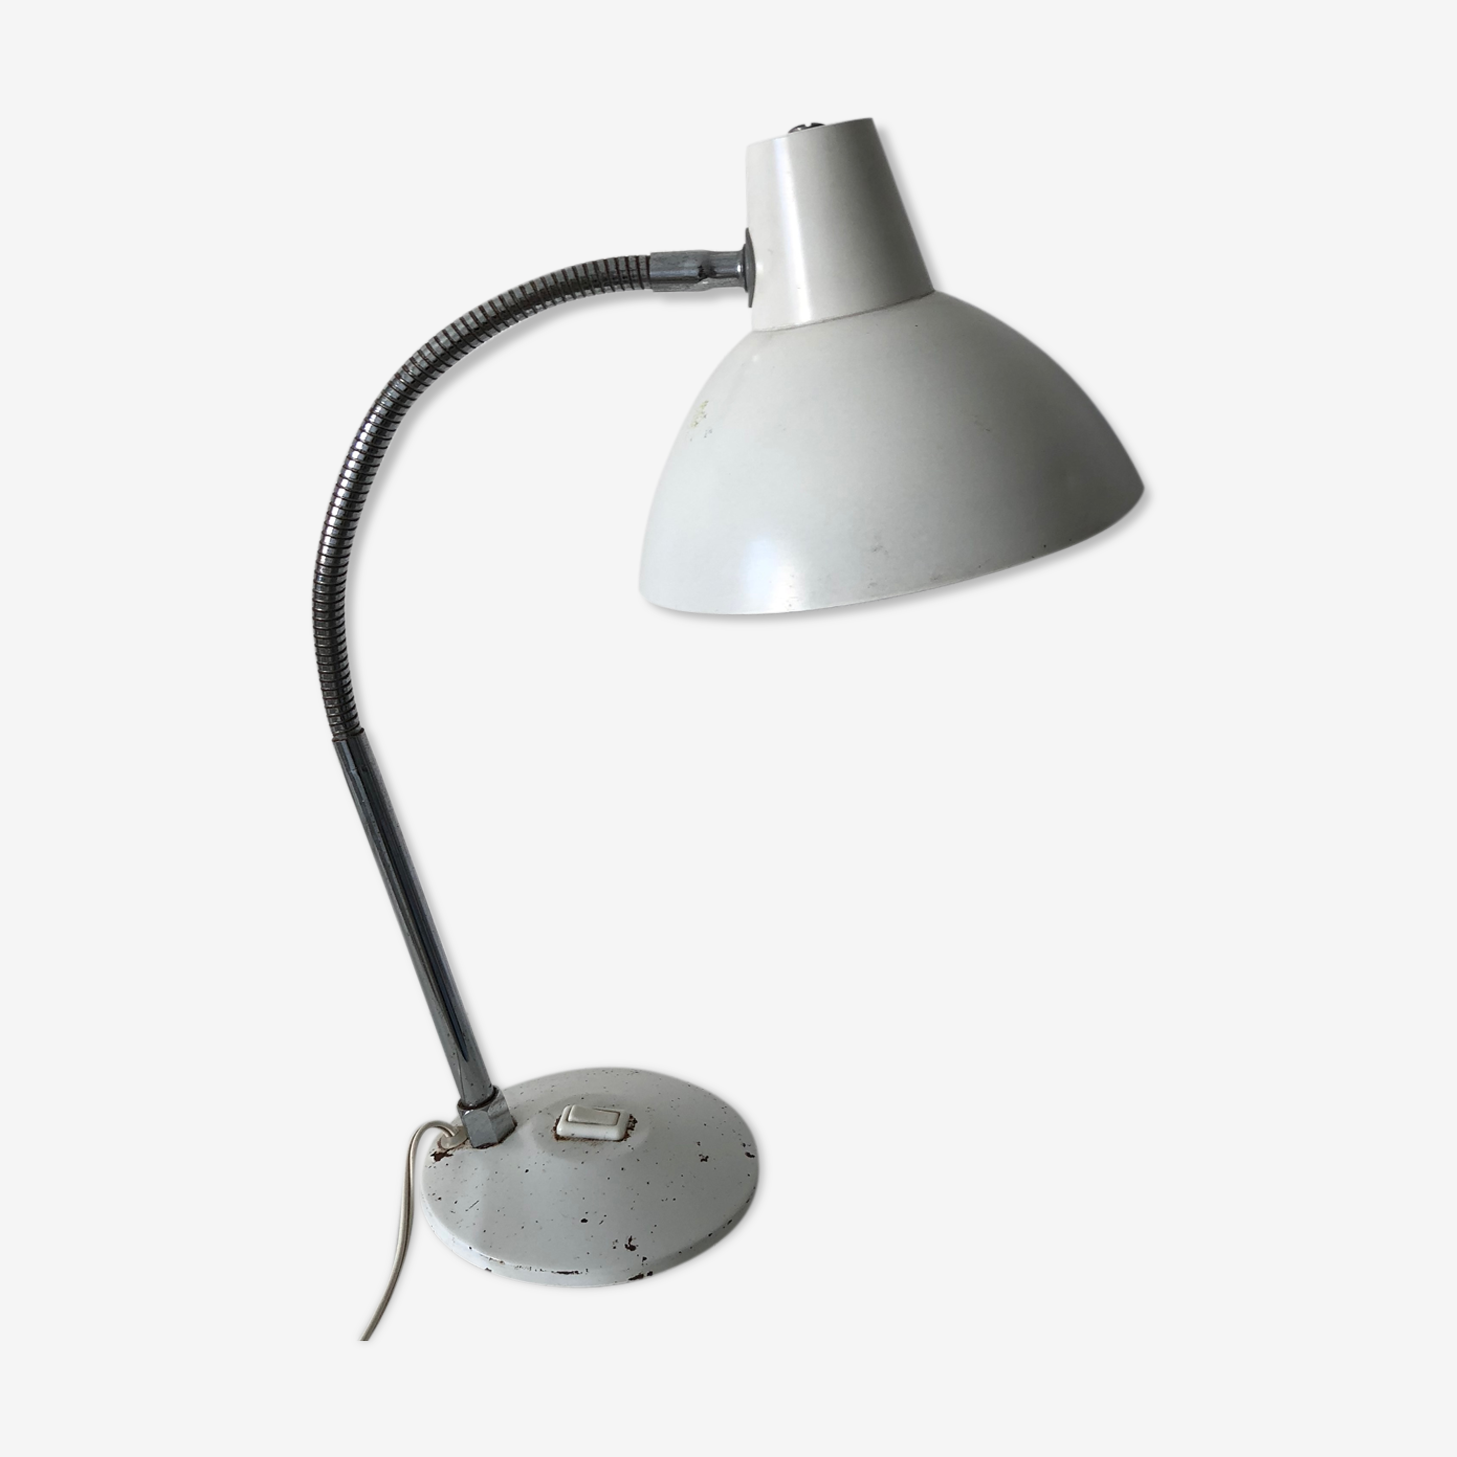 Aluminor 1960 desk lamp